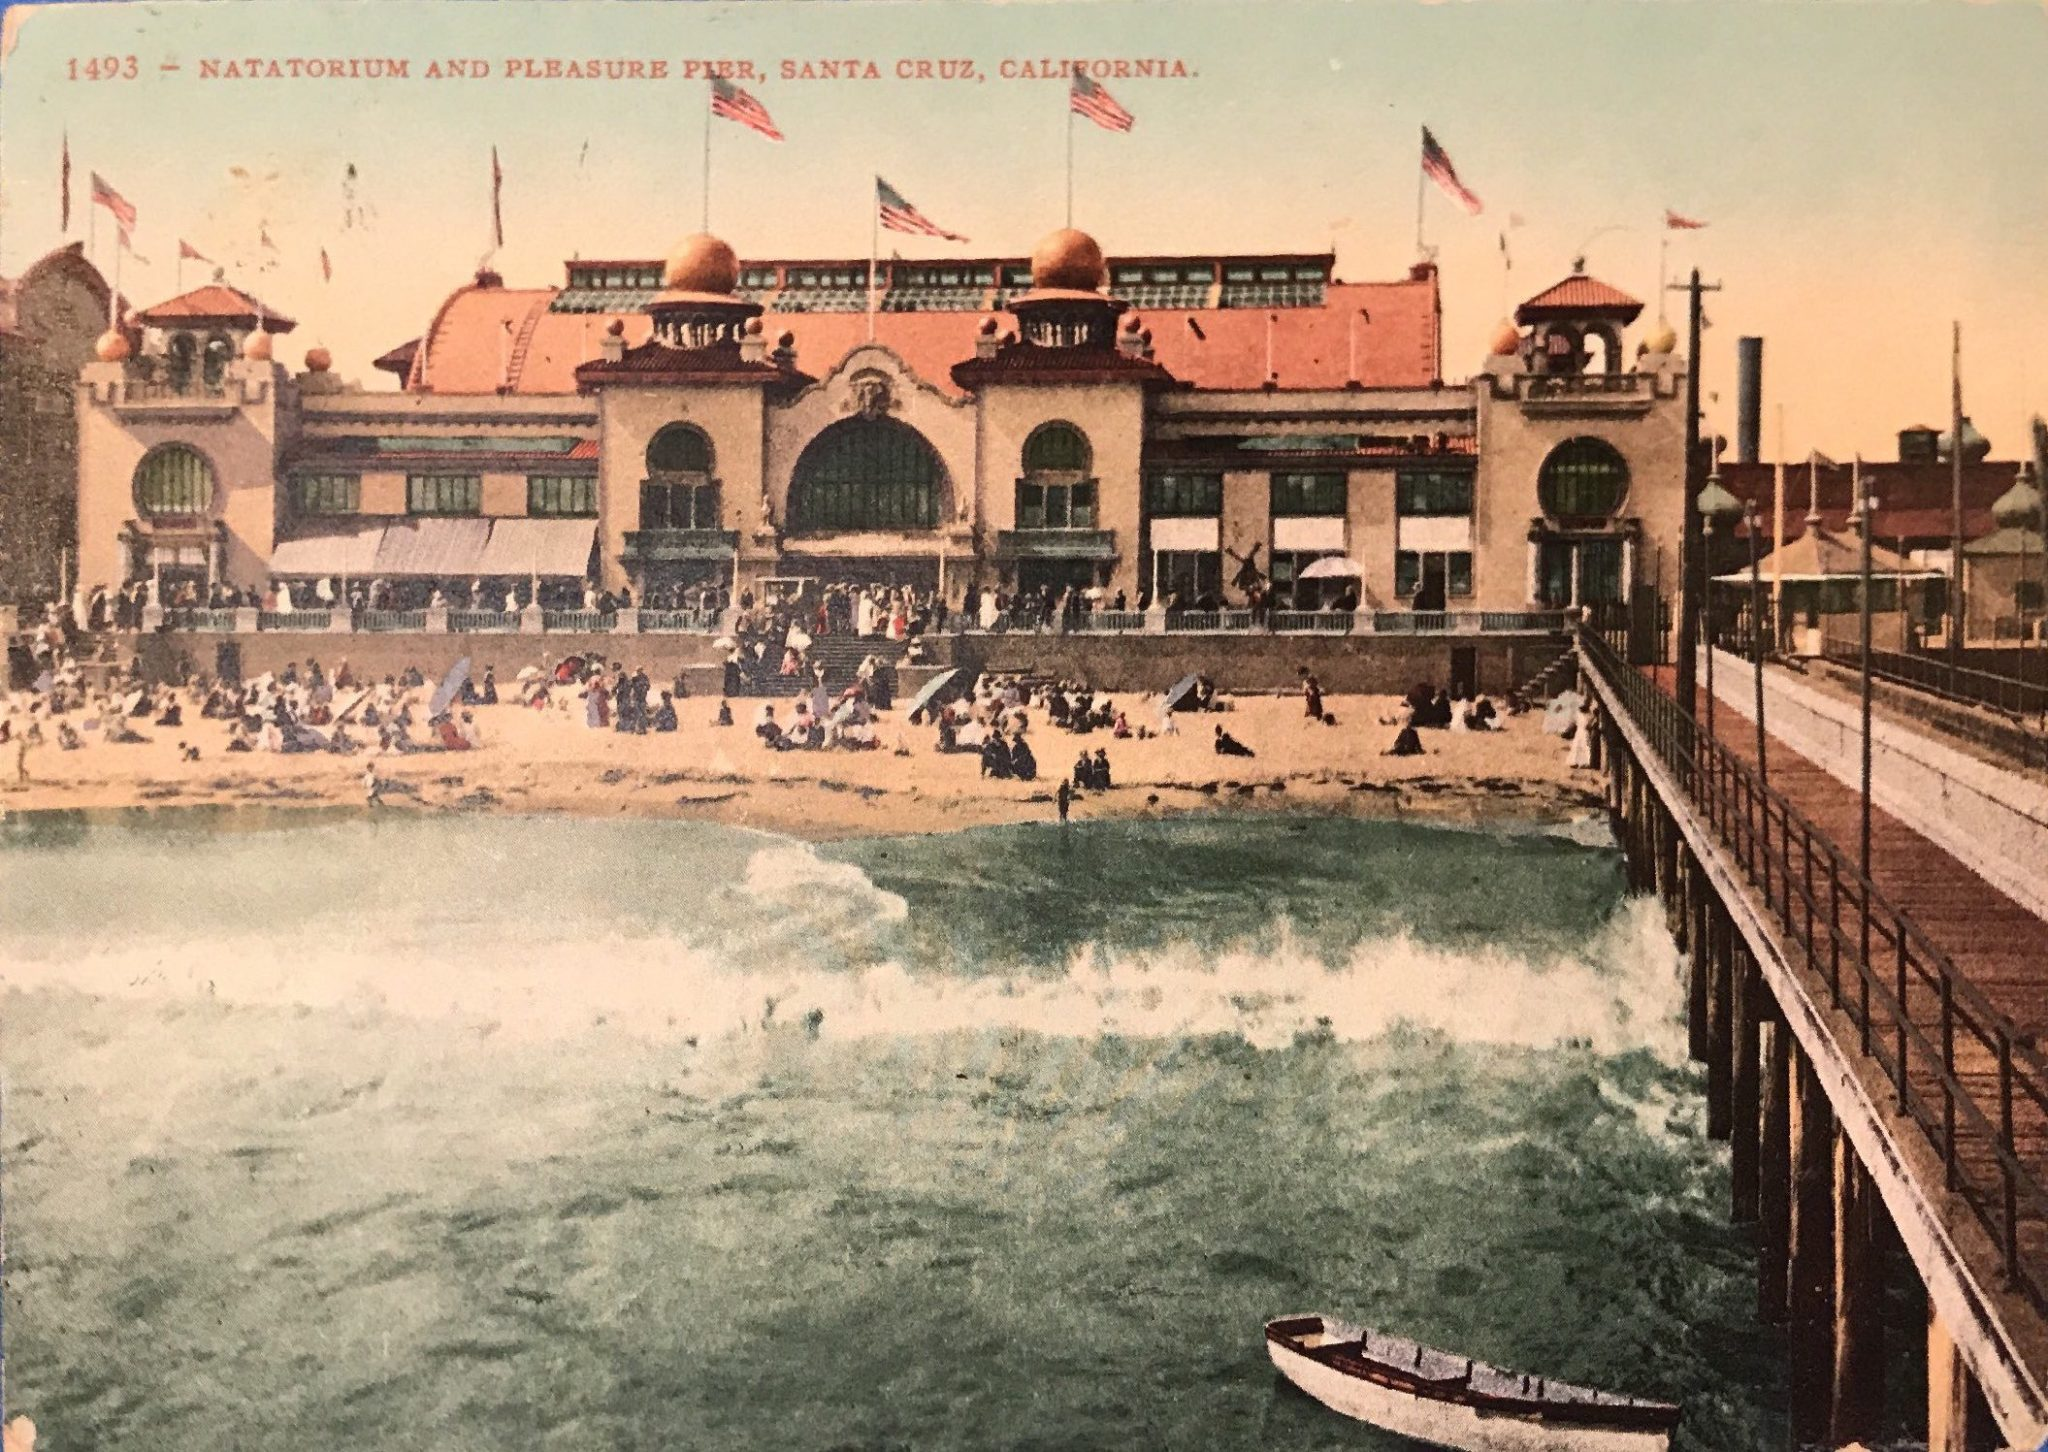 Natatorium and Pleasure Pier